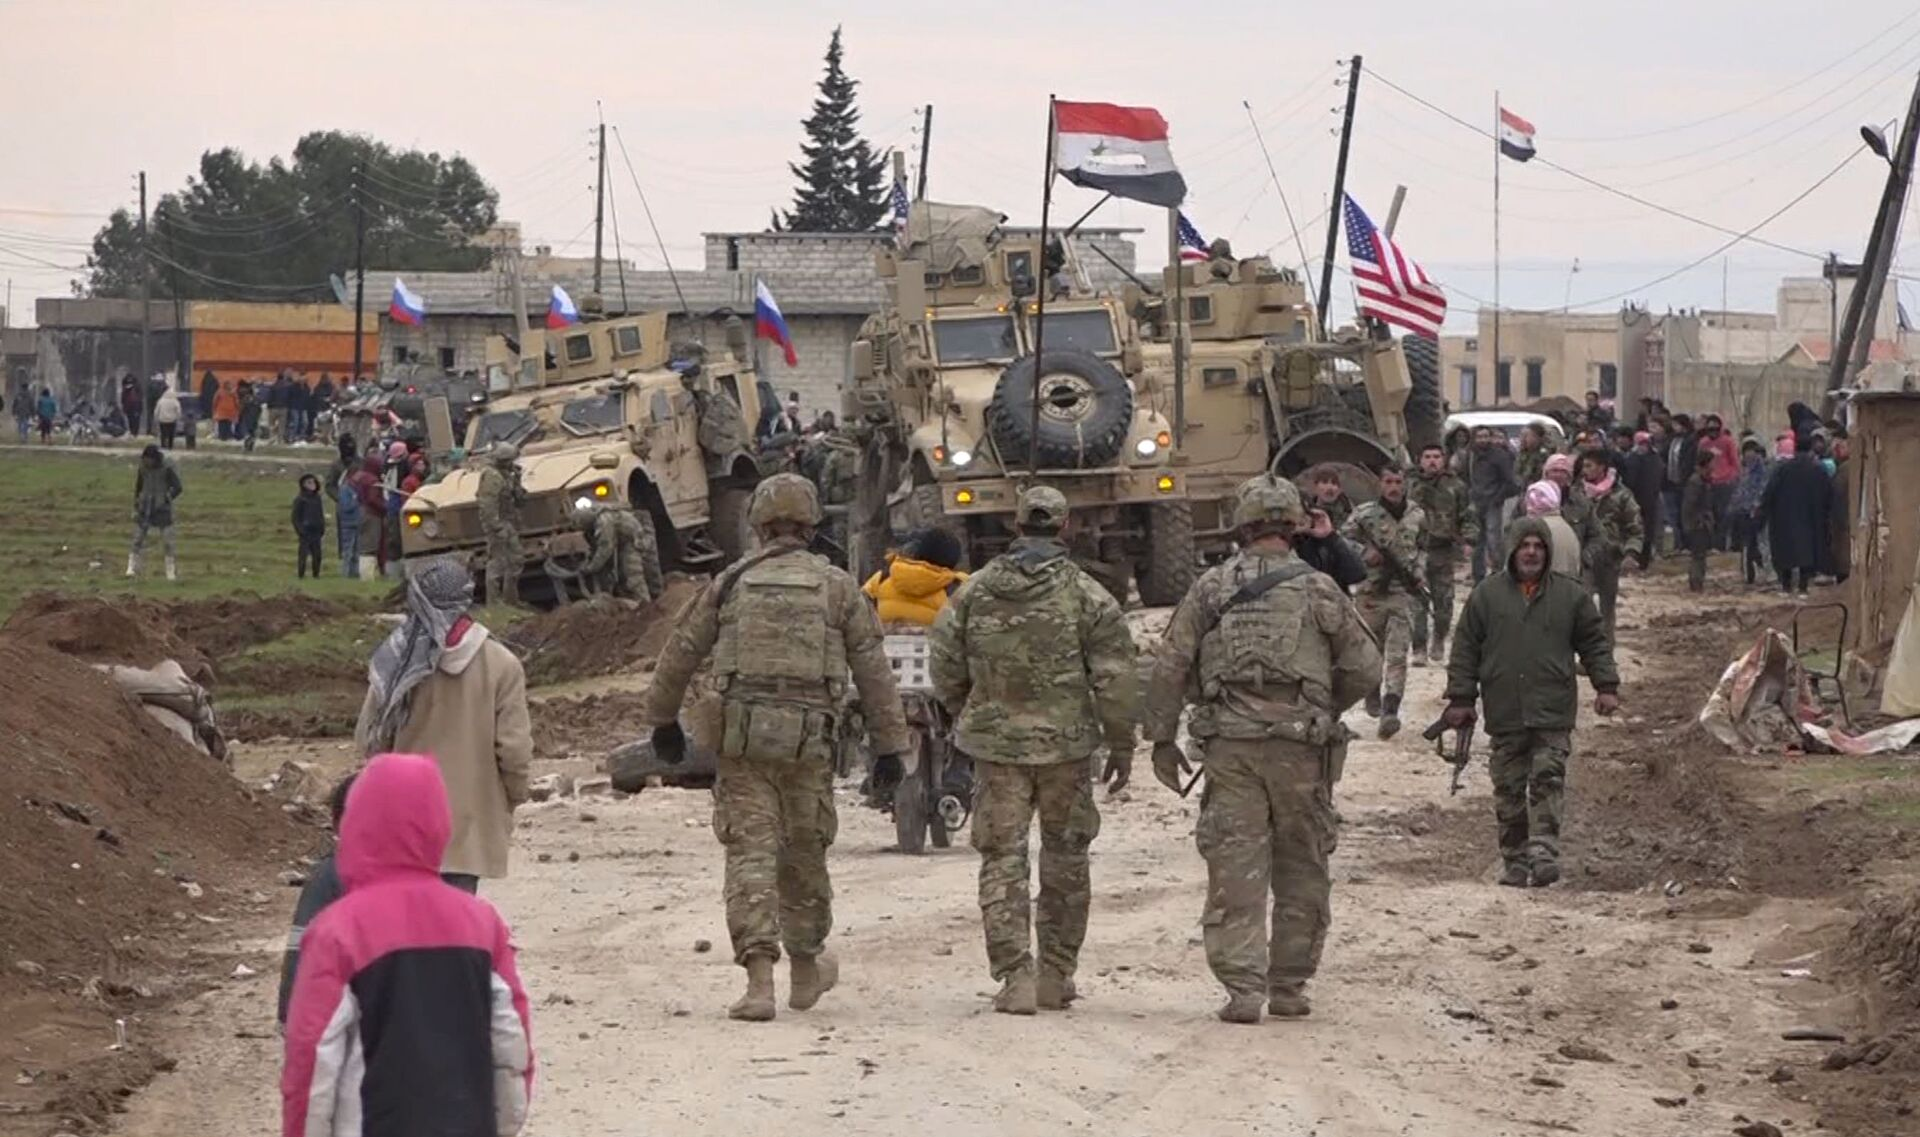 In this frame grab from video, Russian, Syrian and others gather next to an American military convoy stuck in the village of Khirbet Ammu, east of Qamishli city, Syria, Wednesday, Feb. 12, 2020. The Syrian official news agency SANA, said Wednesday, that locals had gathered at an army checkpoint, pelting the U.S. convoy with stones and taking down a U.S. flag flying on a vehicle when troops fired with live ammunition and smoke bombs. (AP Photo) - Sputnik International, 1920, 07.09.2021